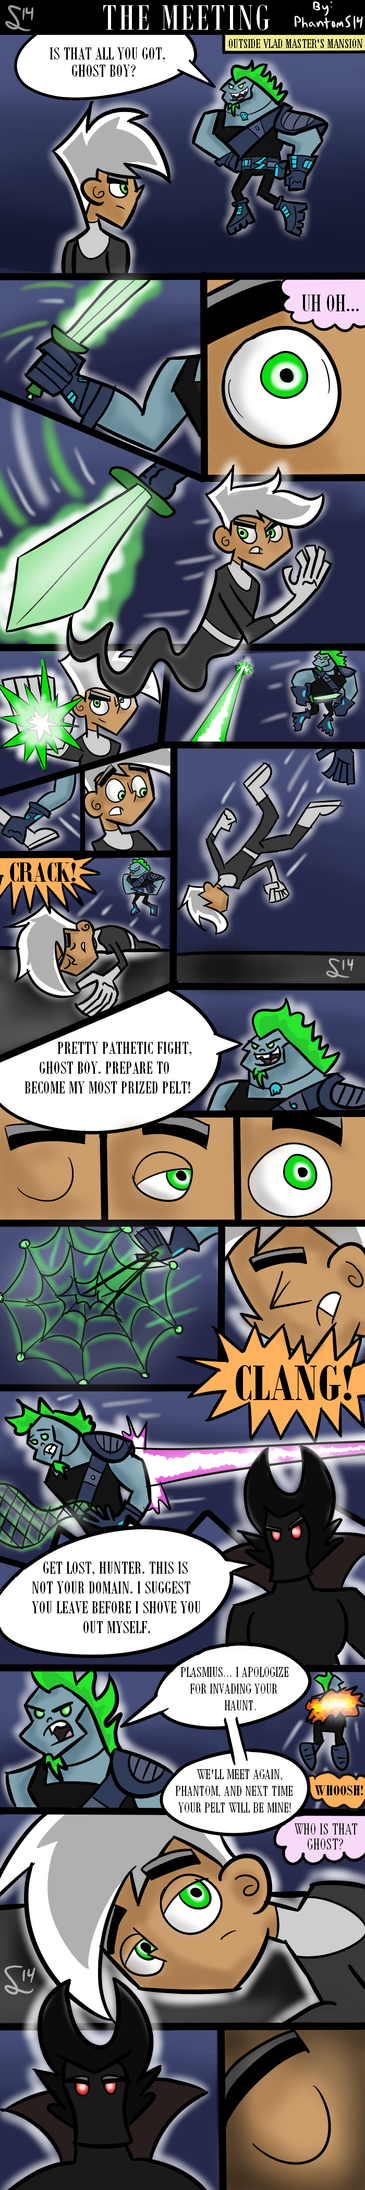 The Meeting: A Danny Phantom Comic by PhantomS14